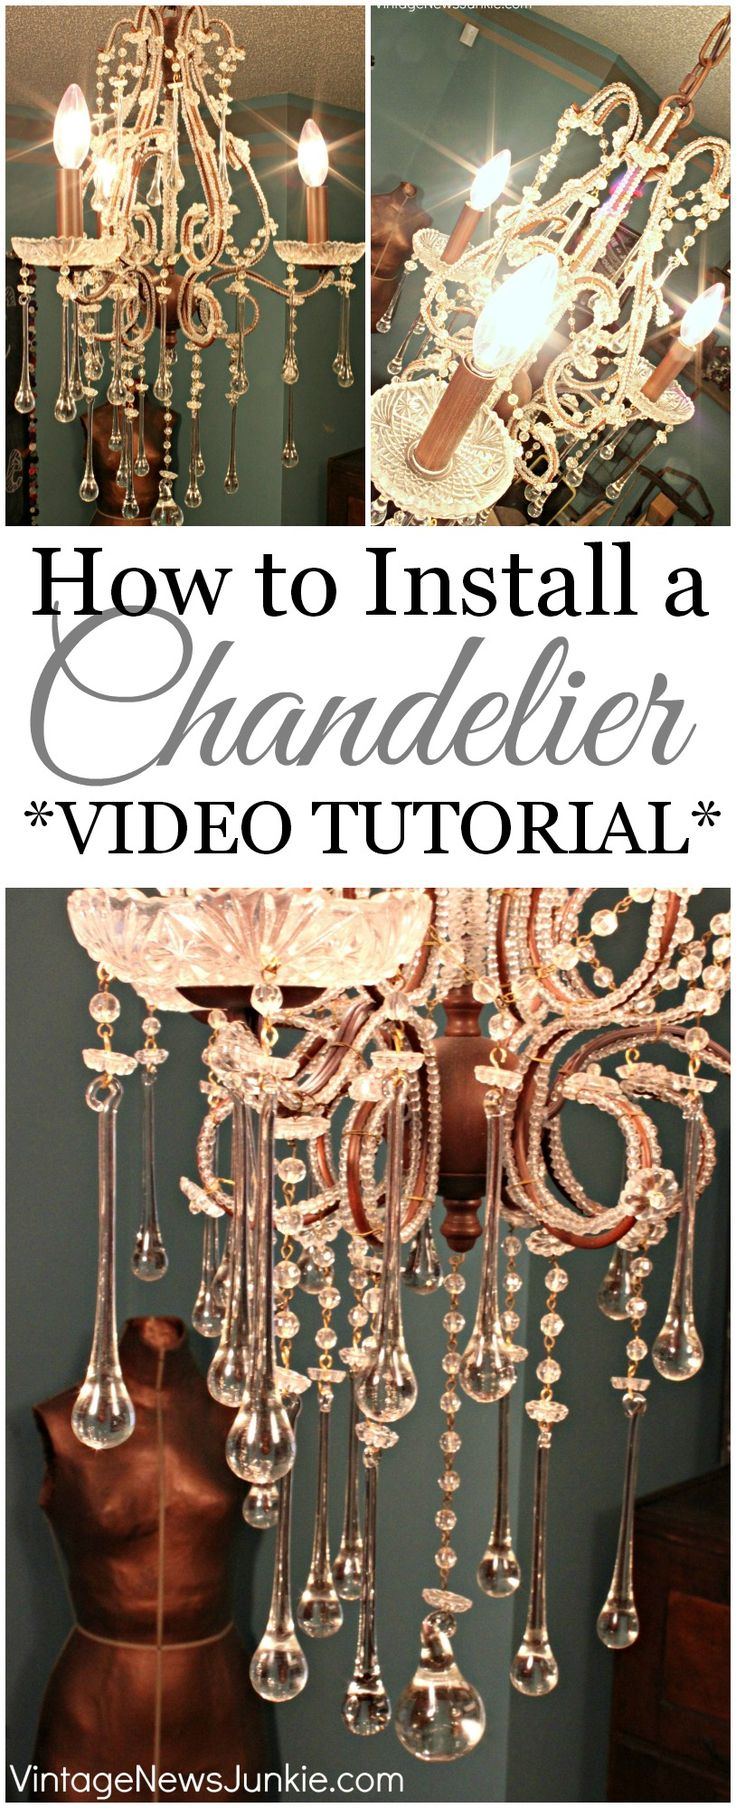 132 best diy lighting images on pinterest bricolage build your 132 best diy lighting images on pinterest bricolage build your own and chandeliers arubaitofo Image collections